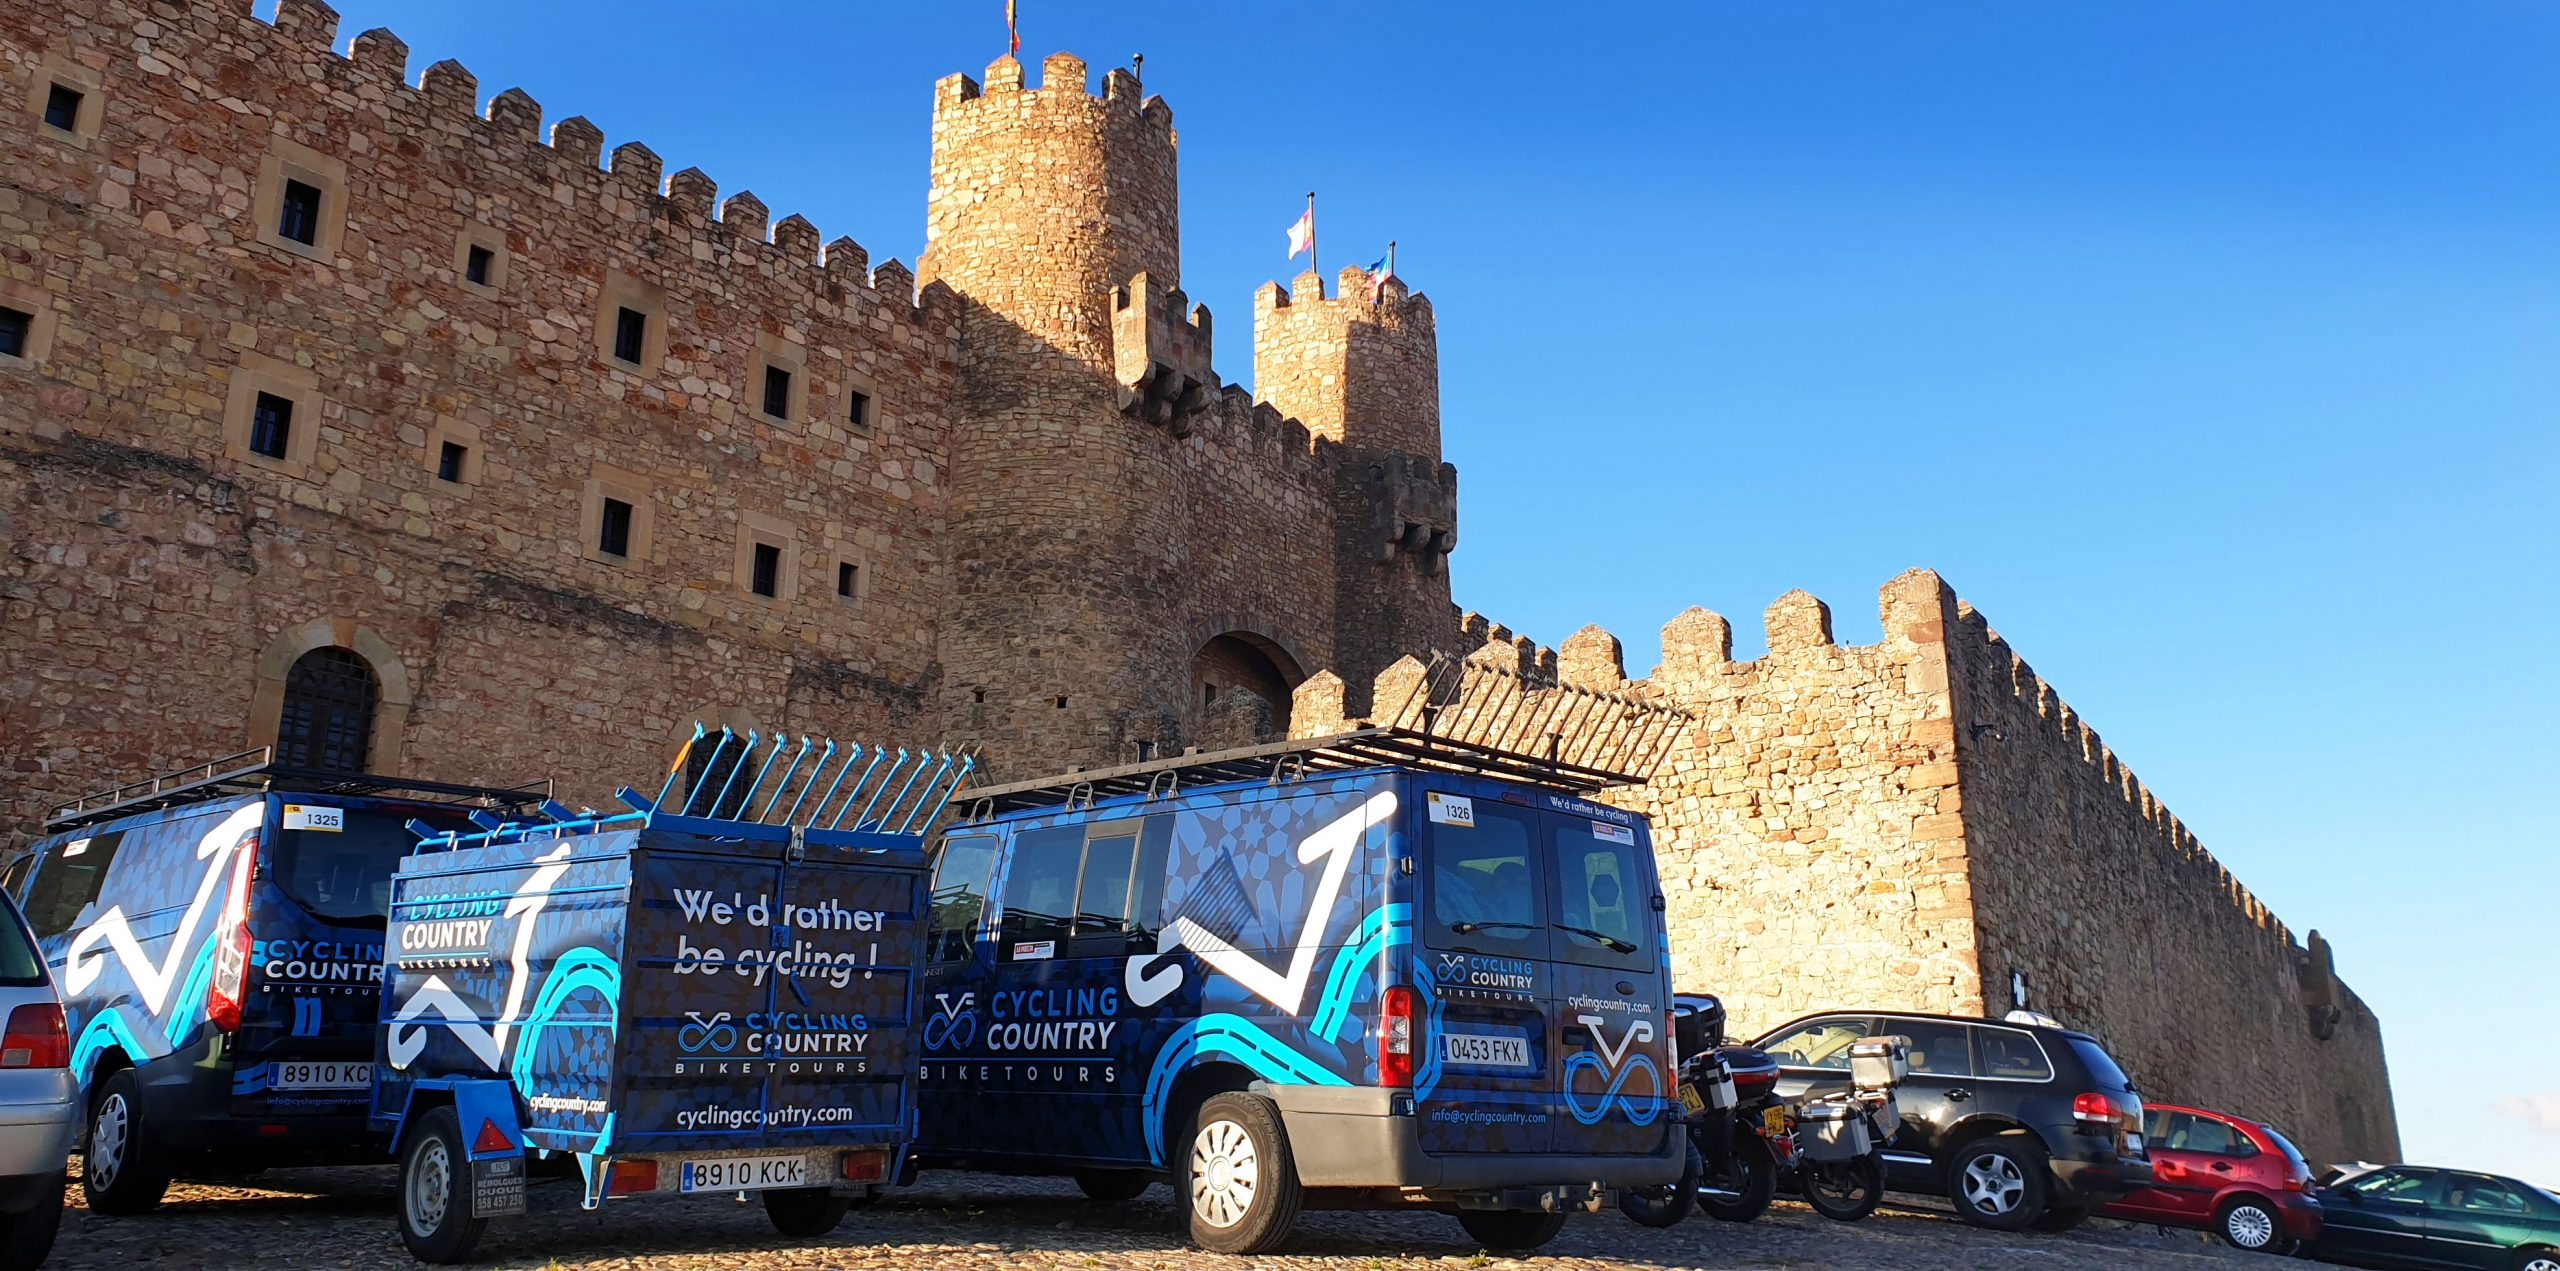 Vuelta Road Cycling Tour in Spain